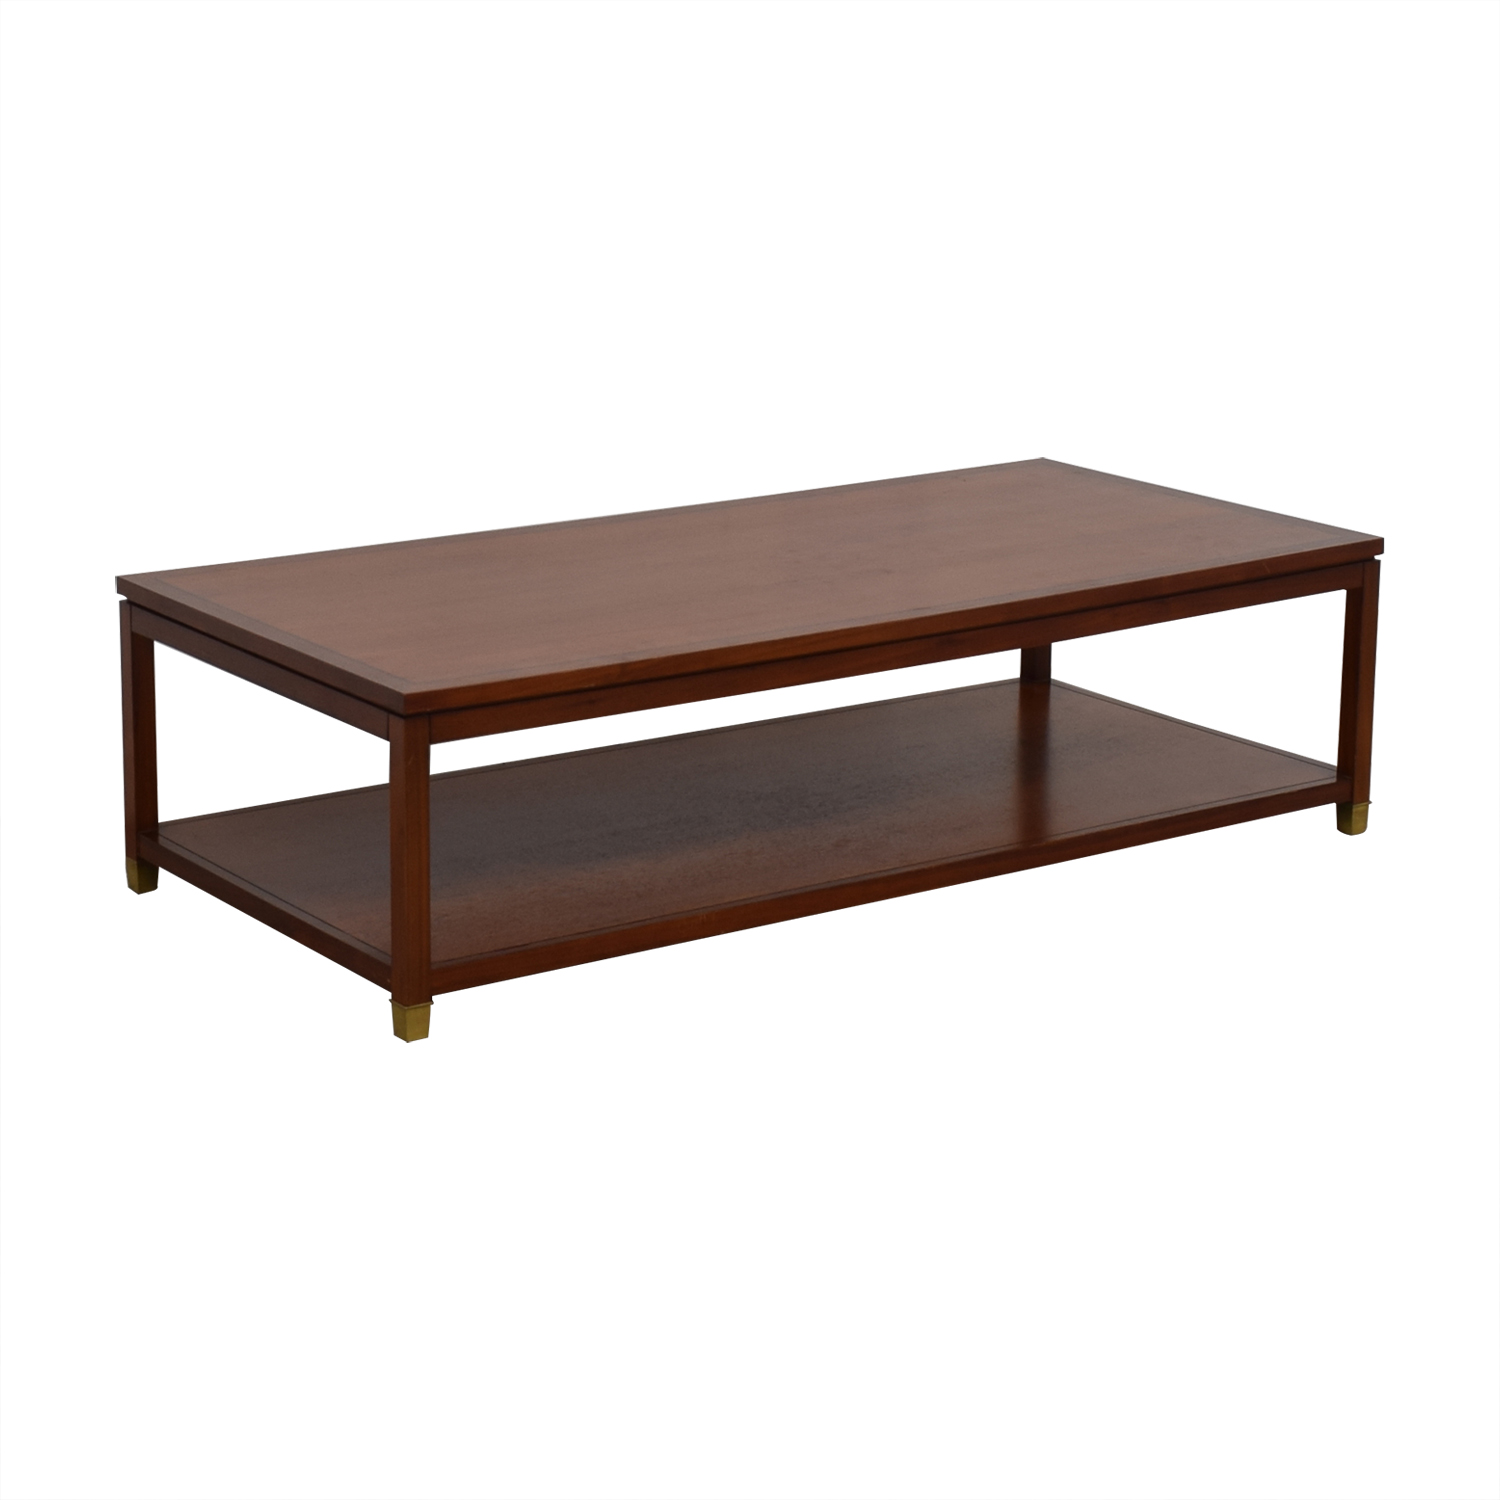 Mitchell Gold + Bob Williams Mitchell Gold + Bob Williams Rectangular Coffee Table on sale